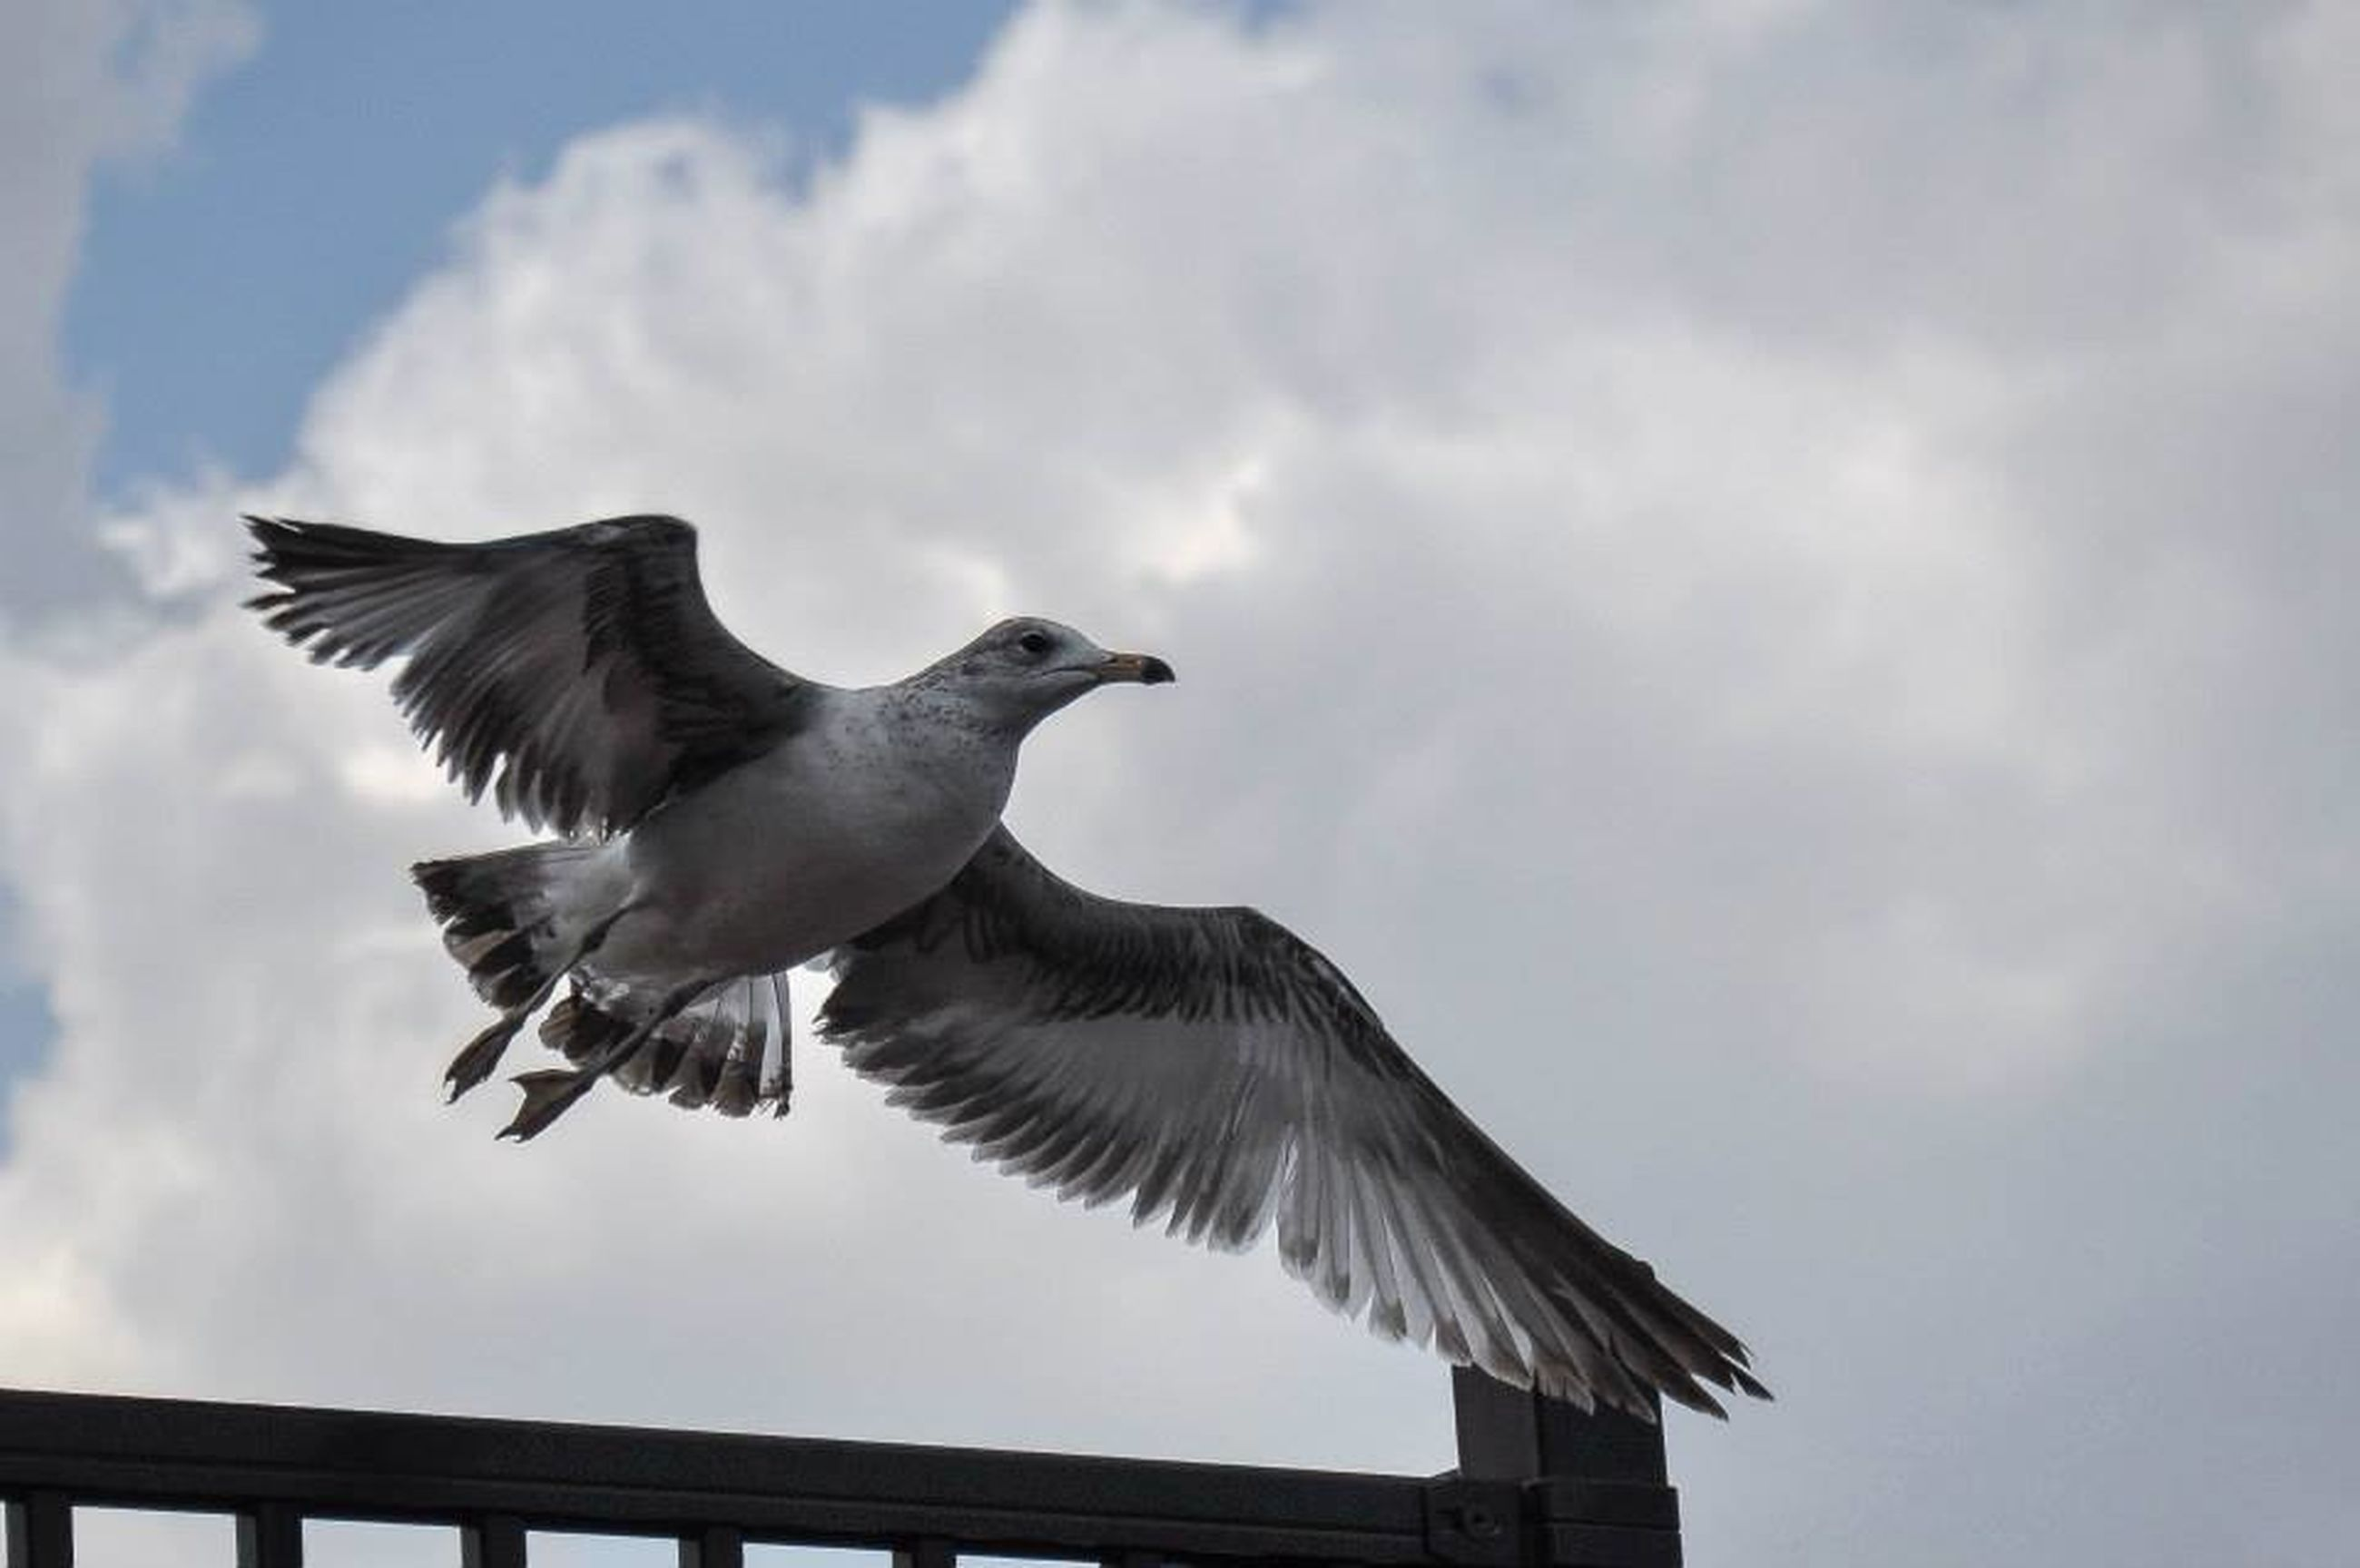 bird, animal themes, animals in the wild, spread wings, flying, low angle view, wildlife, sky, seagull, one animal, cloud - sky, mid-air, cloud, cloudy, full length, nature, day, outdoors, perching, no people